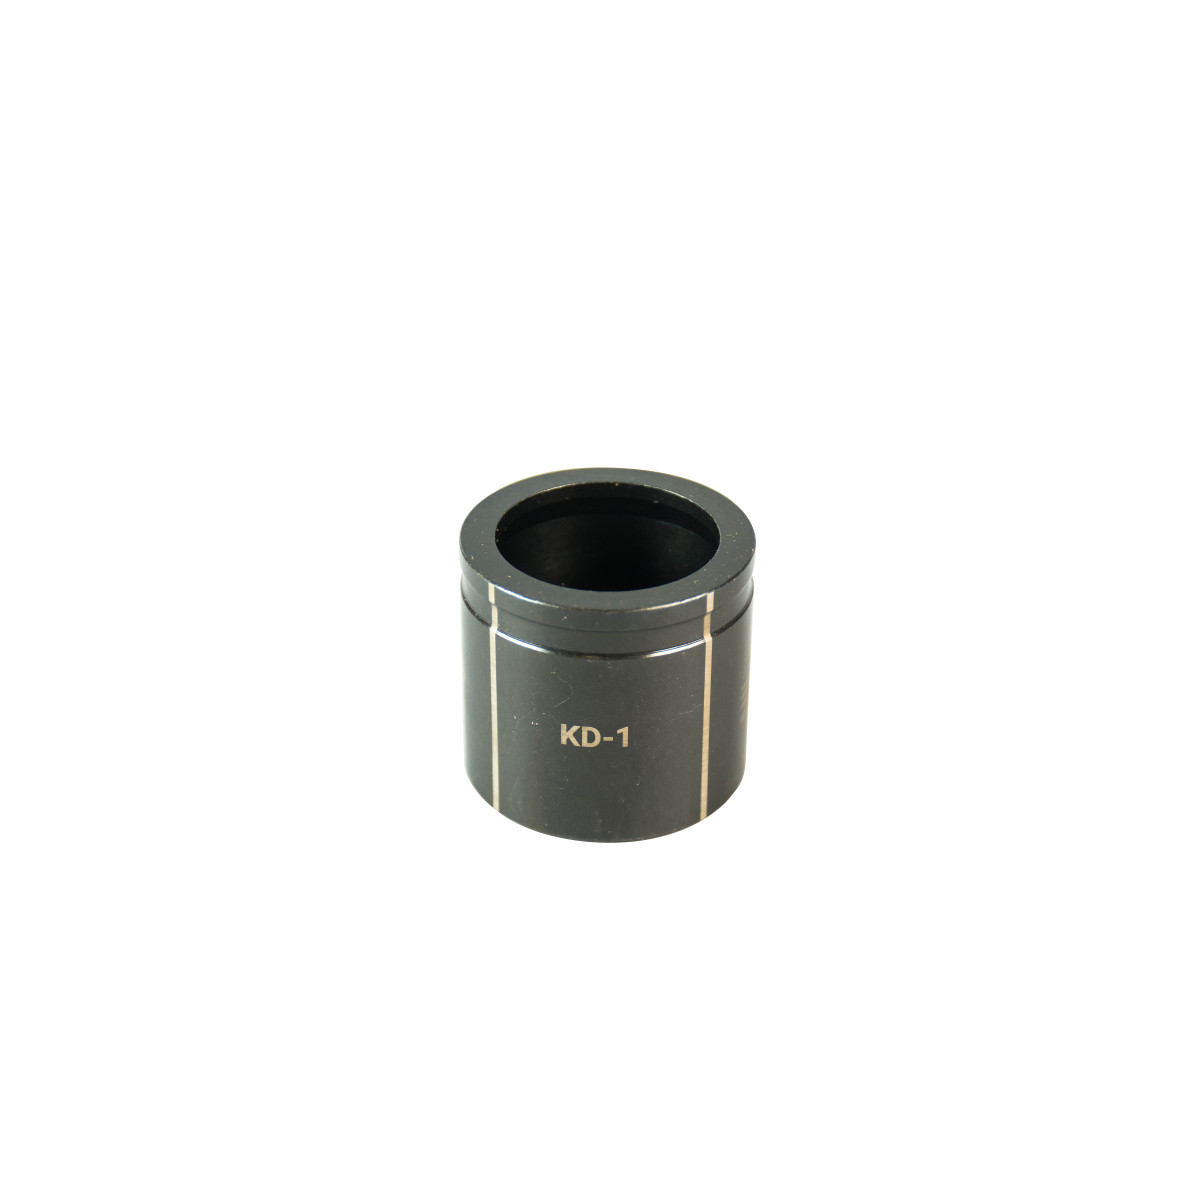 """GREENLEE 1"""" Conduit Size Knockout Die.  Optimized for widest range of materials and drivers.  Alignment markings for improved accuracy.  Laser markings for quick part identification.  Made in USA"""